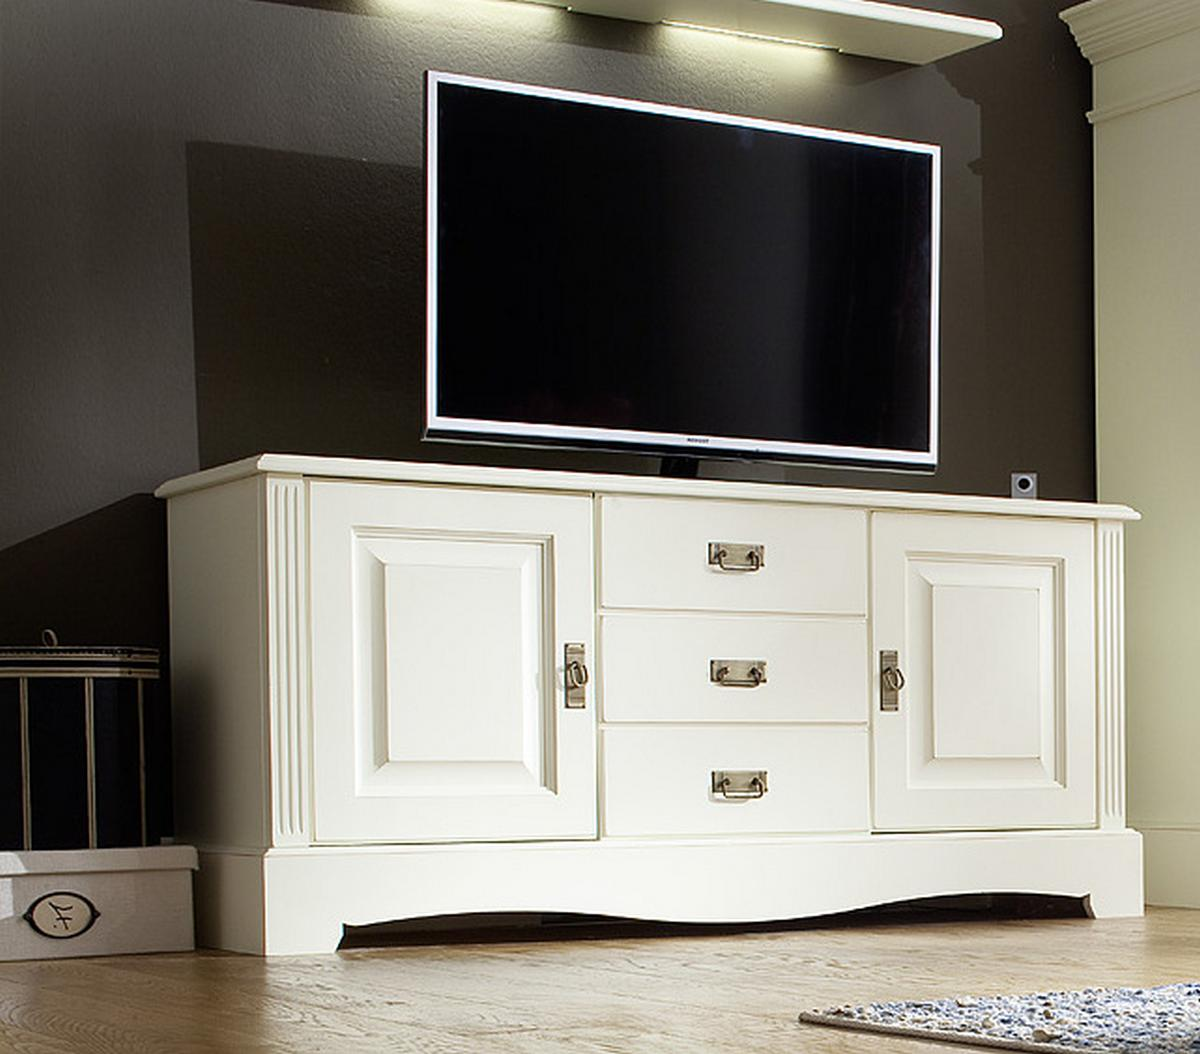 Landhausstil Sideboard Weiß Tv Board Wei Landhaus Top Cheap Interesting Wei Landhaus